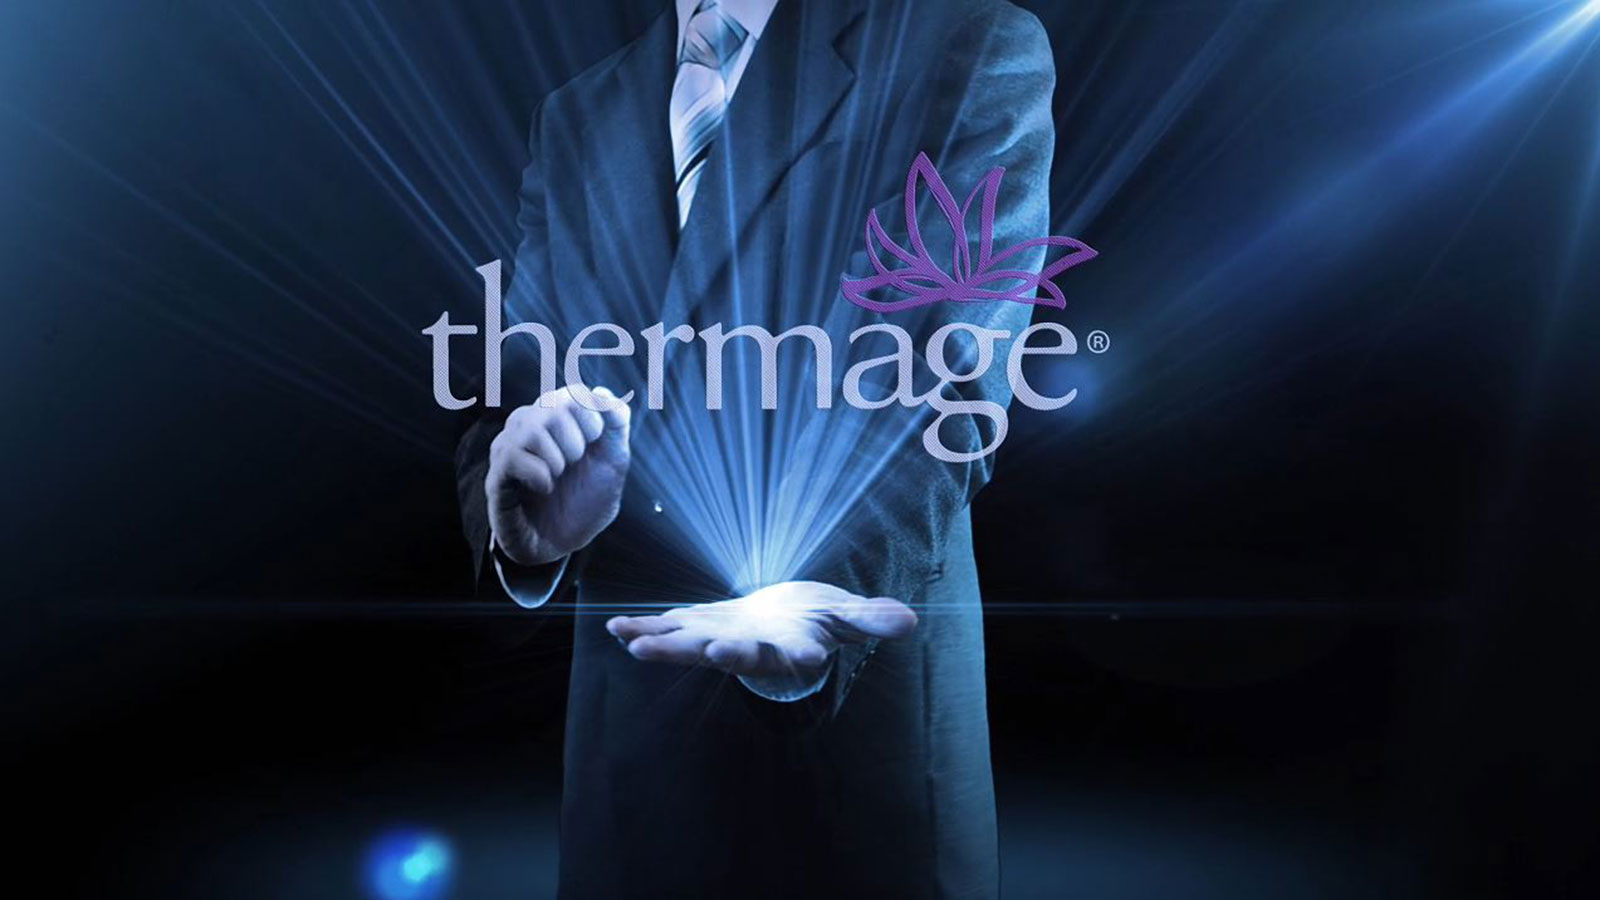 Thermage Promo